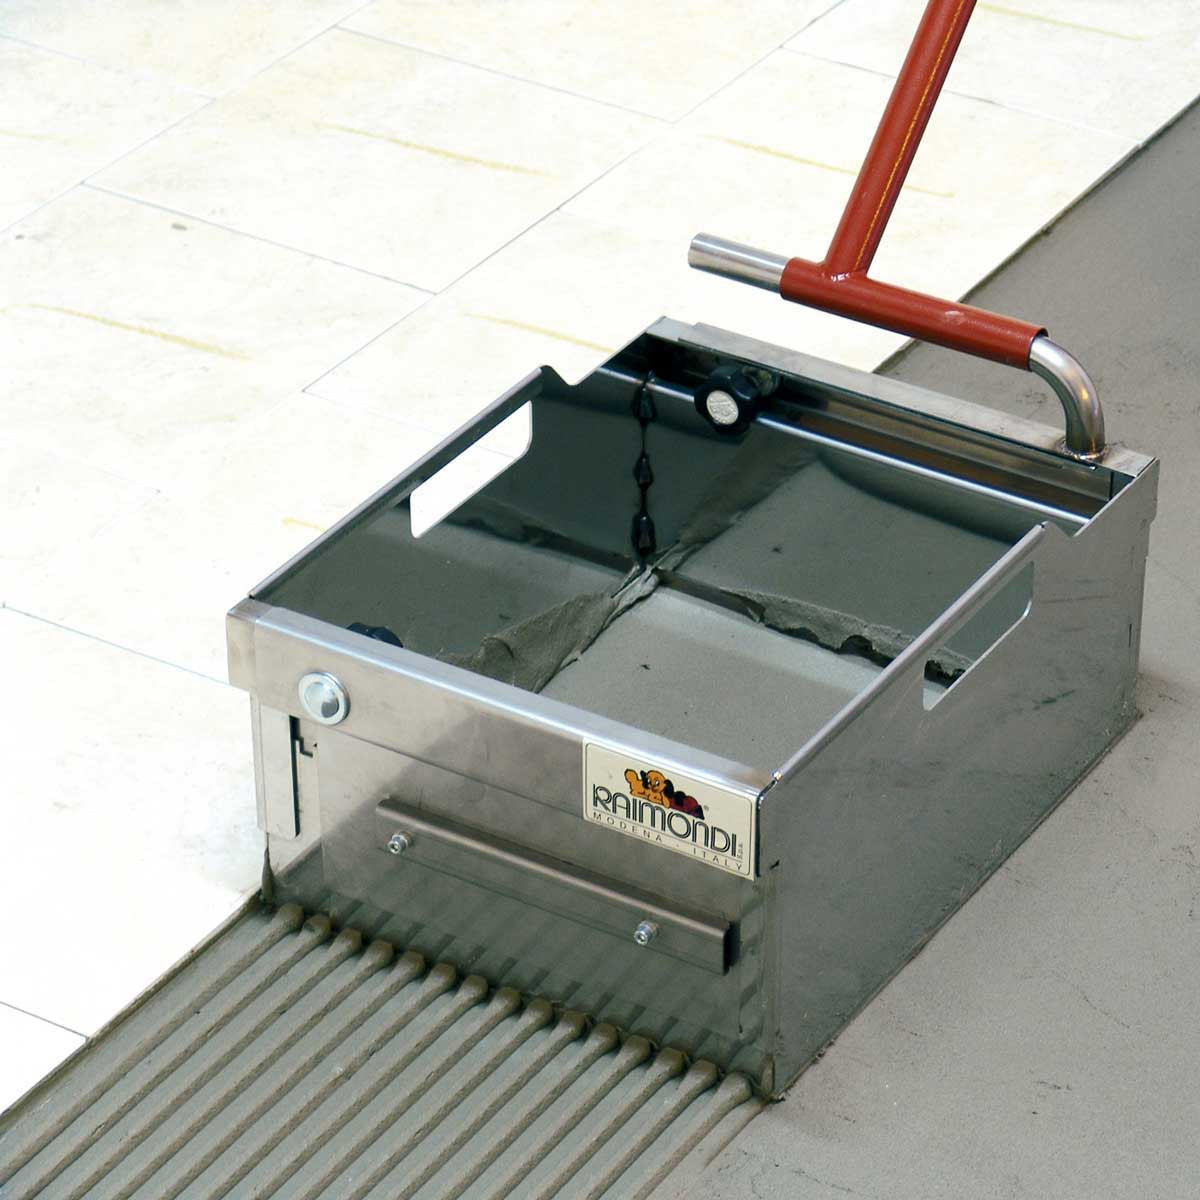 raimondi Colombo tile glue spreader